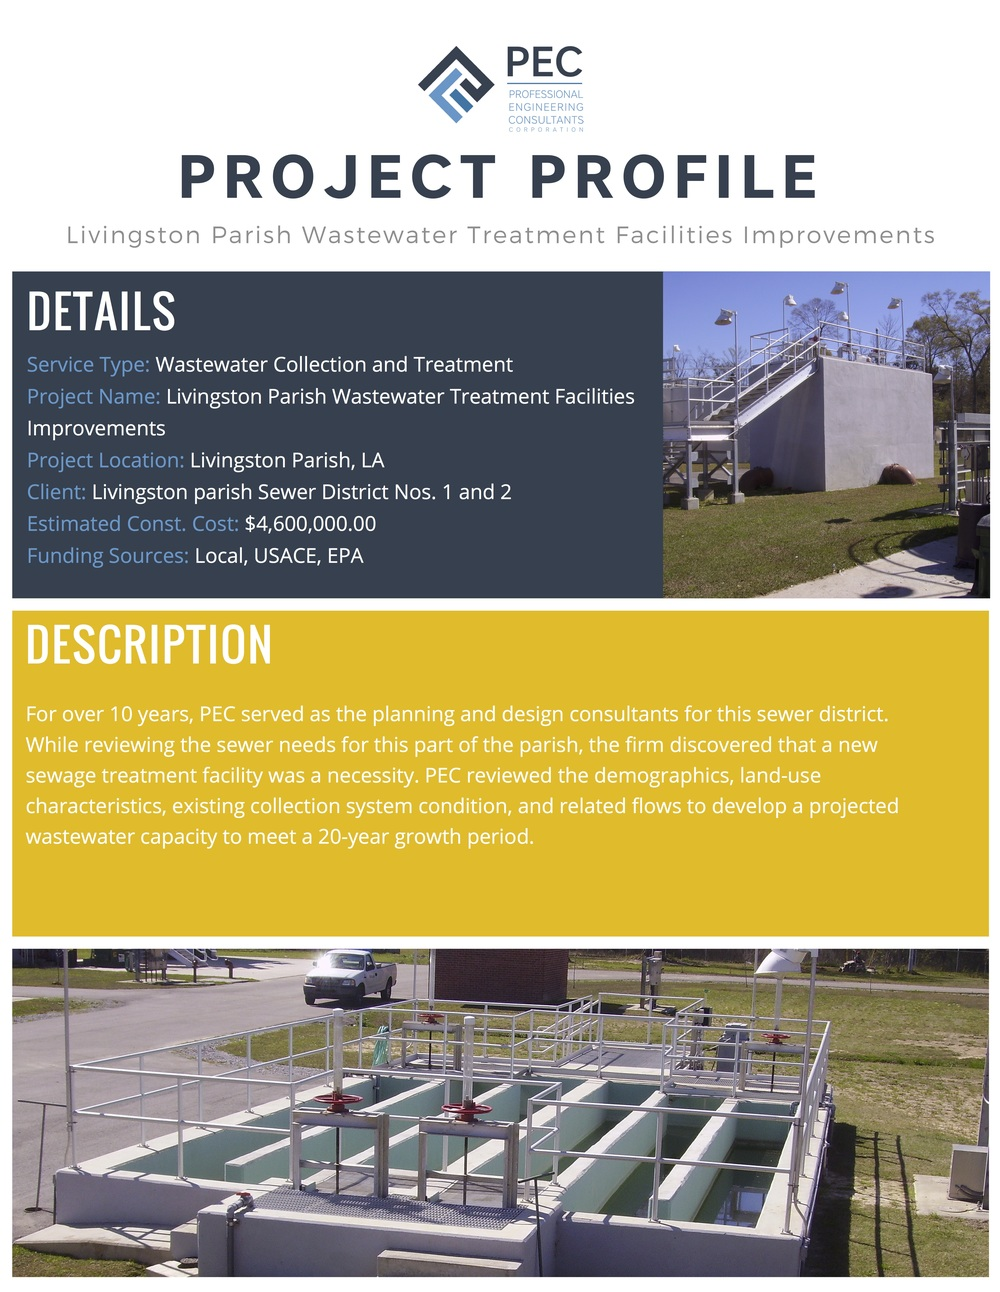 Project Profile_LivingstonParishWastewaterFINAL.jpg